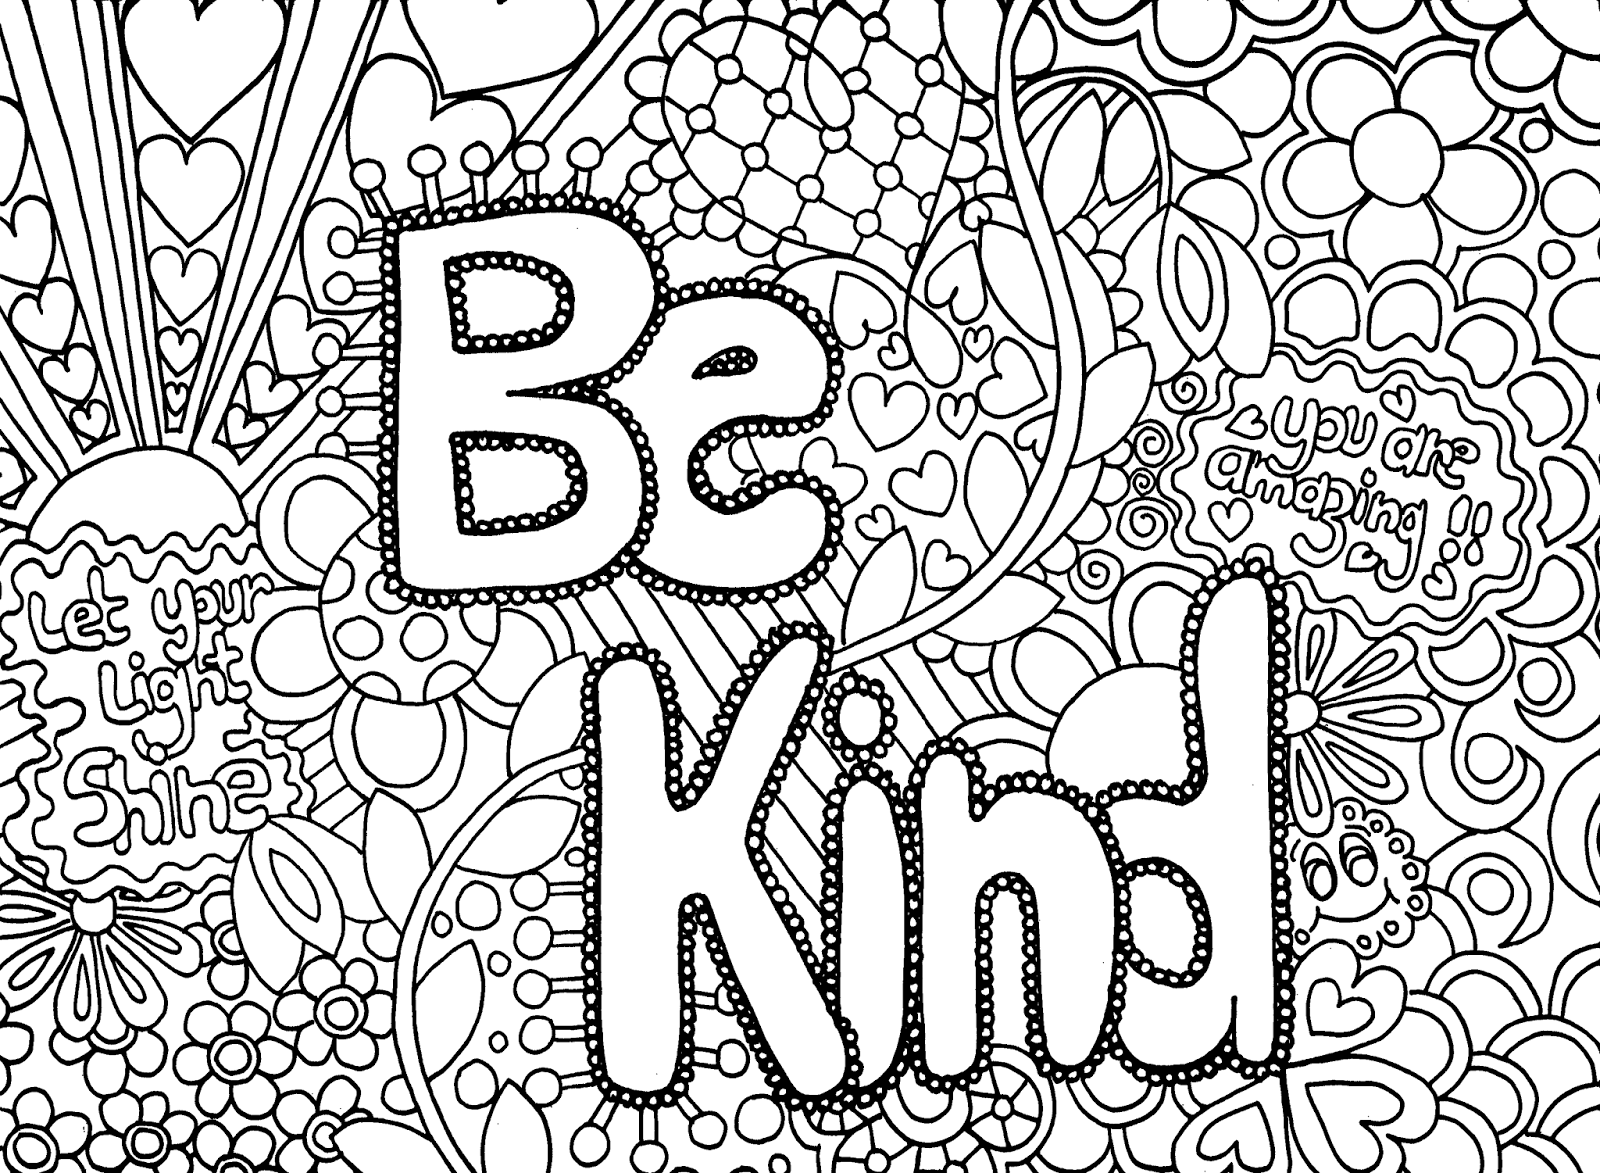 Coloring Sheet - Be Kind